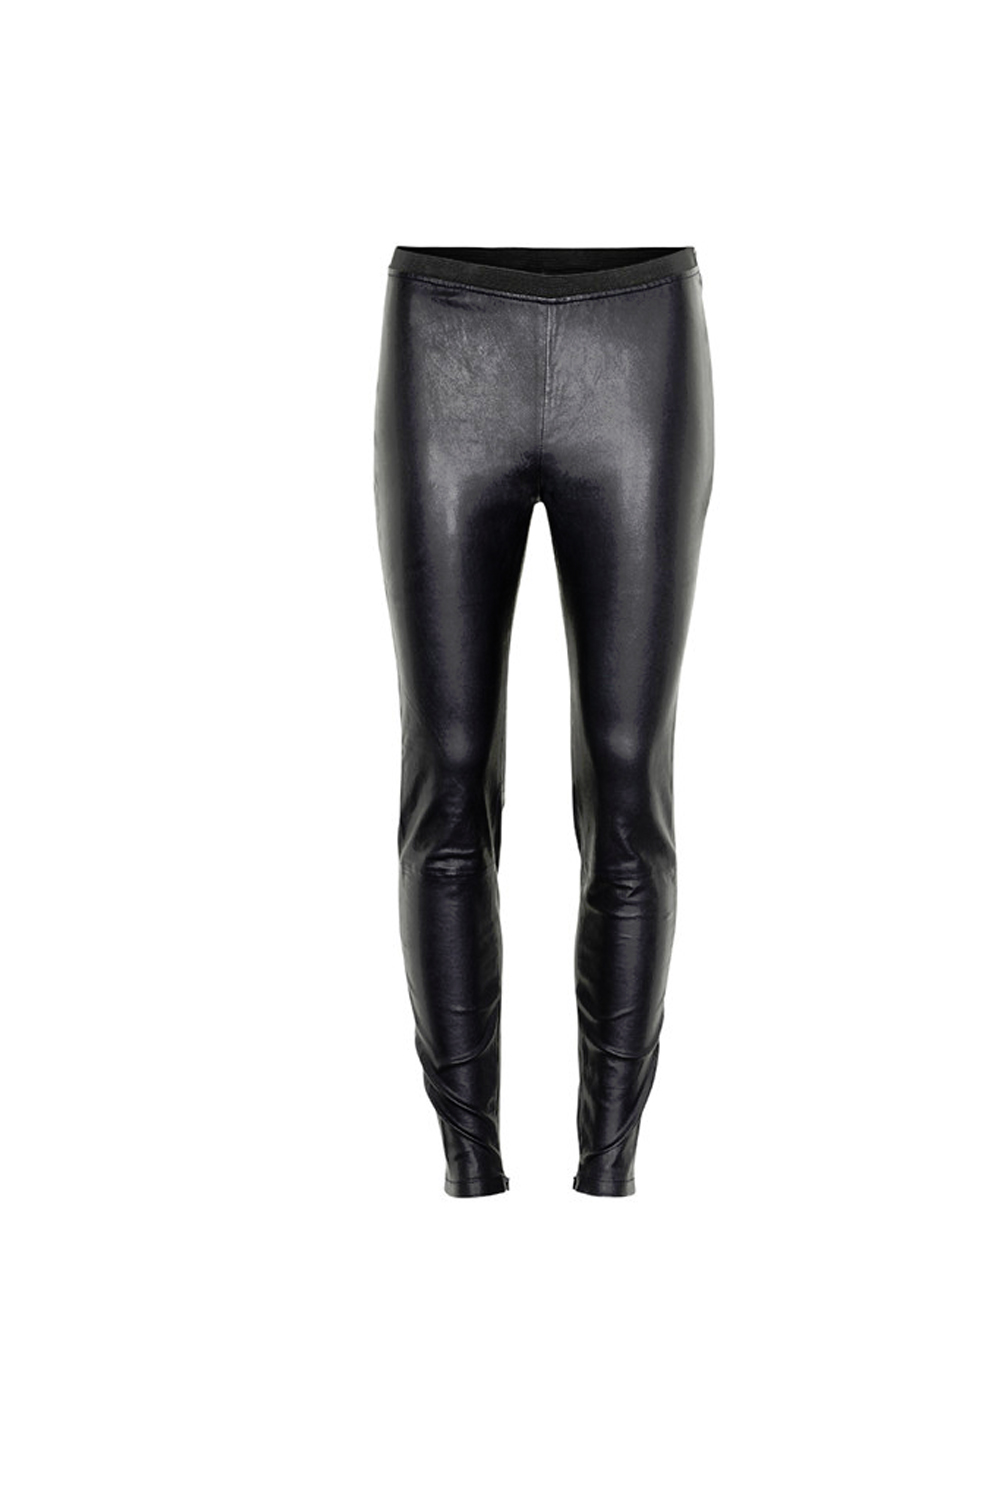 Stella Nova Leather Stretch Leggings